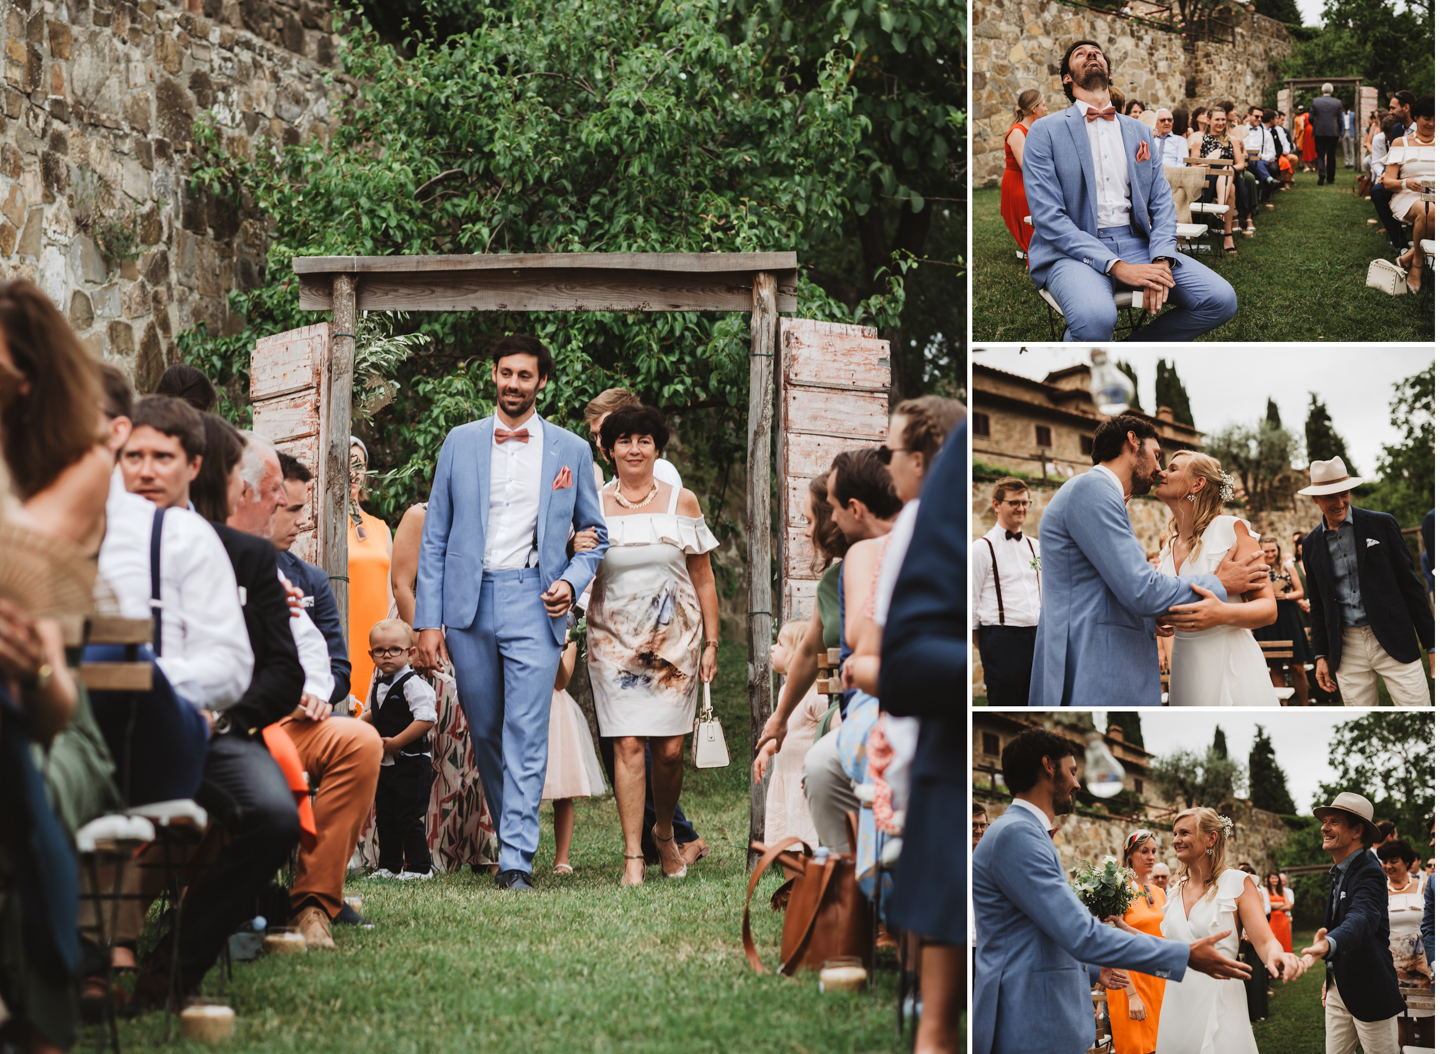 Wedding Photography Quercia al Poggio, Tuscany, Photographer Marco Vegni